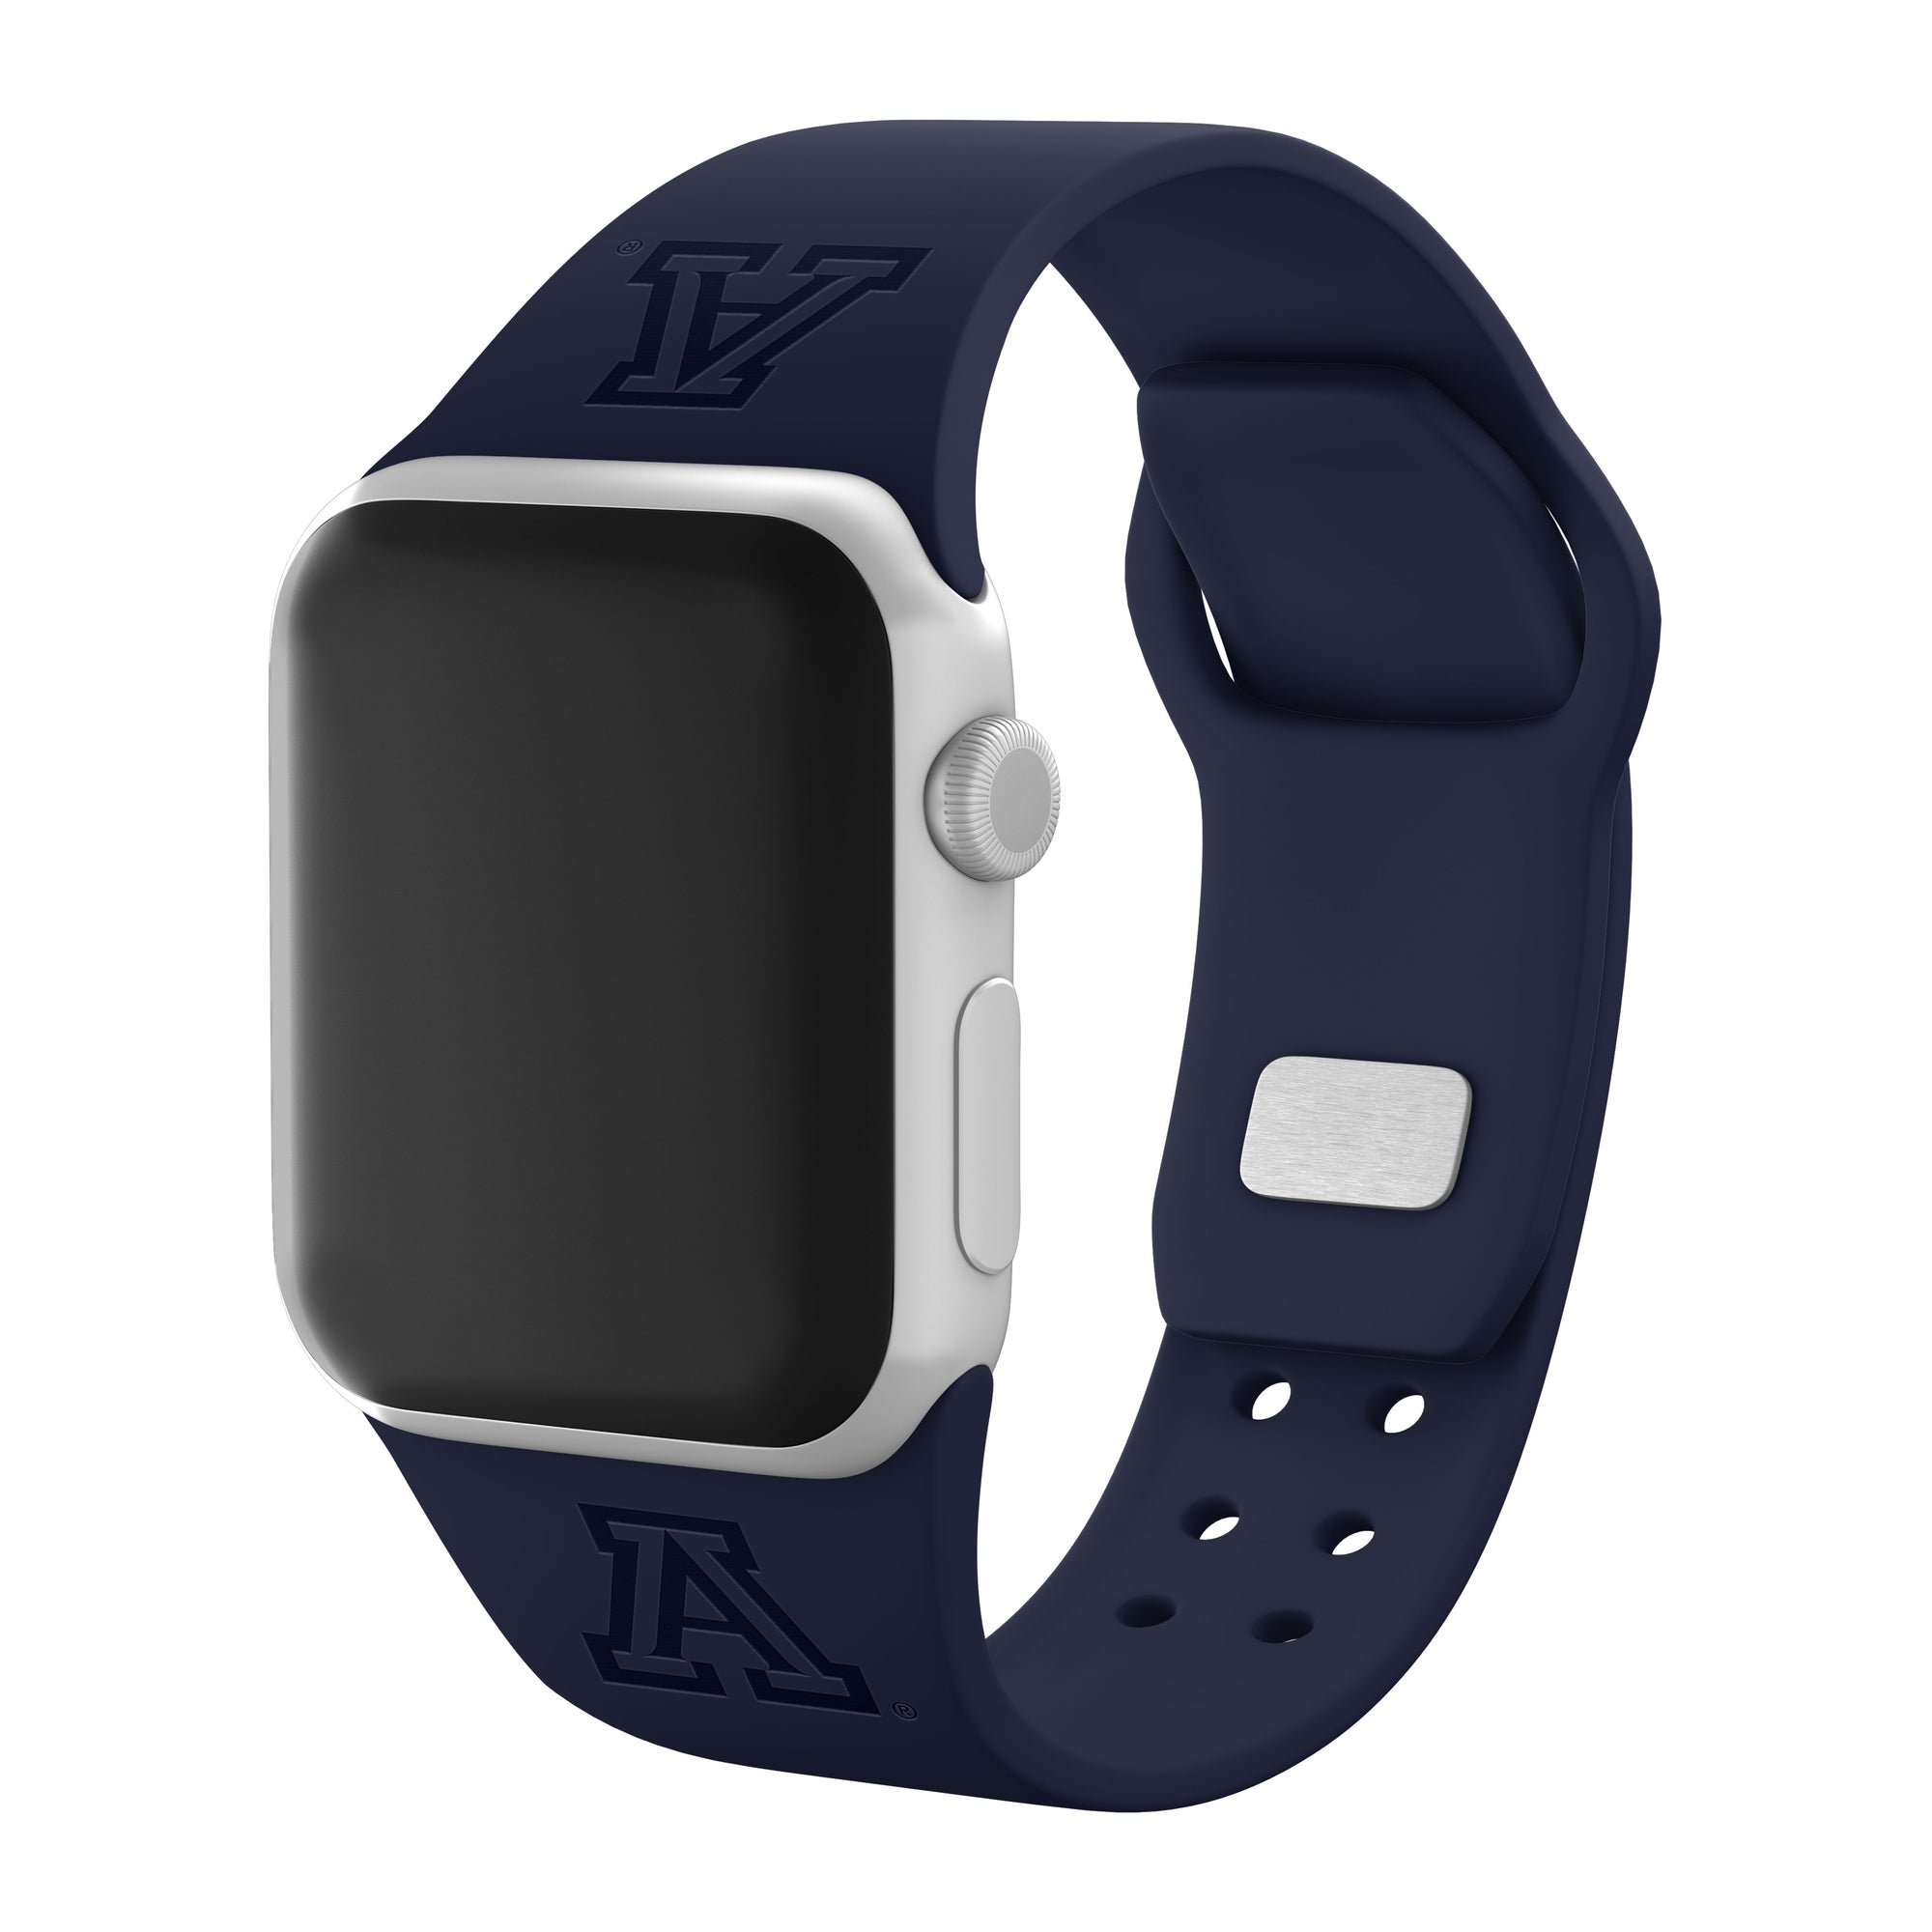 Arizona Wildcats Debossed Apple Watch Band - AffinityBands